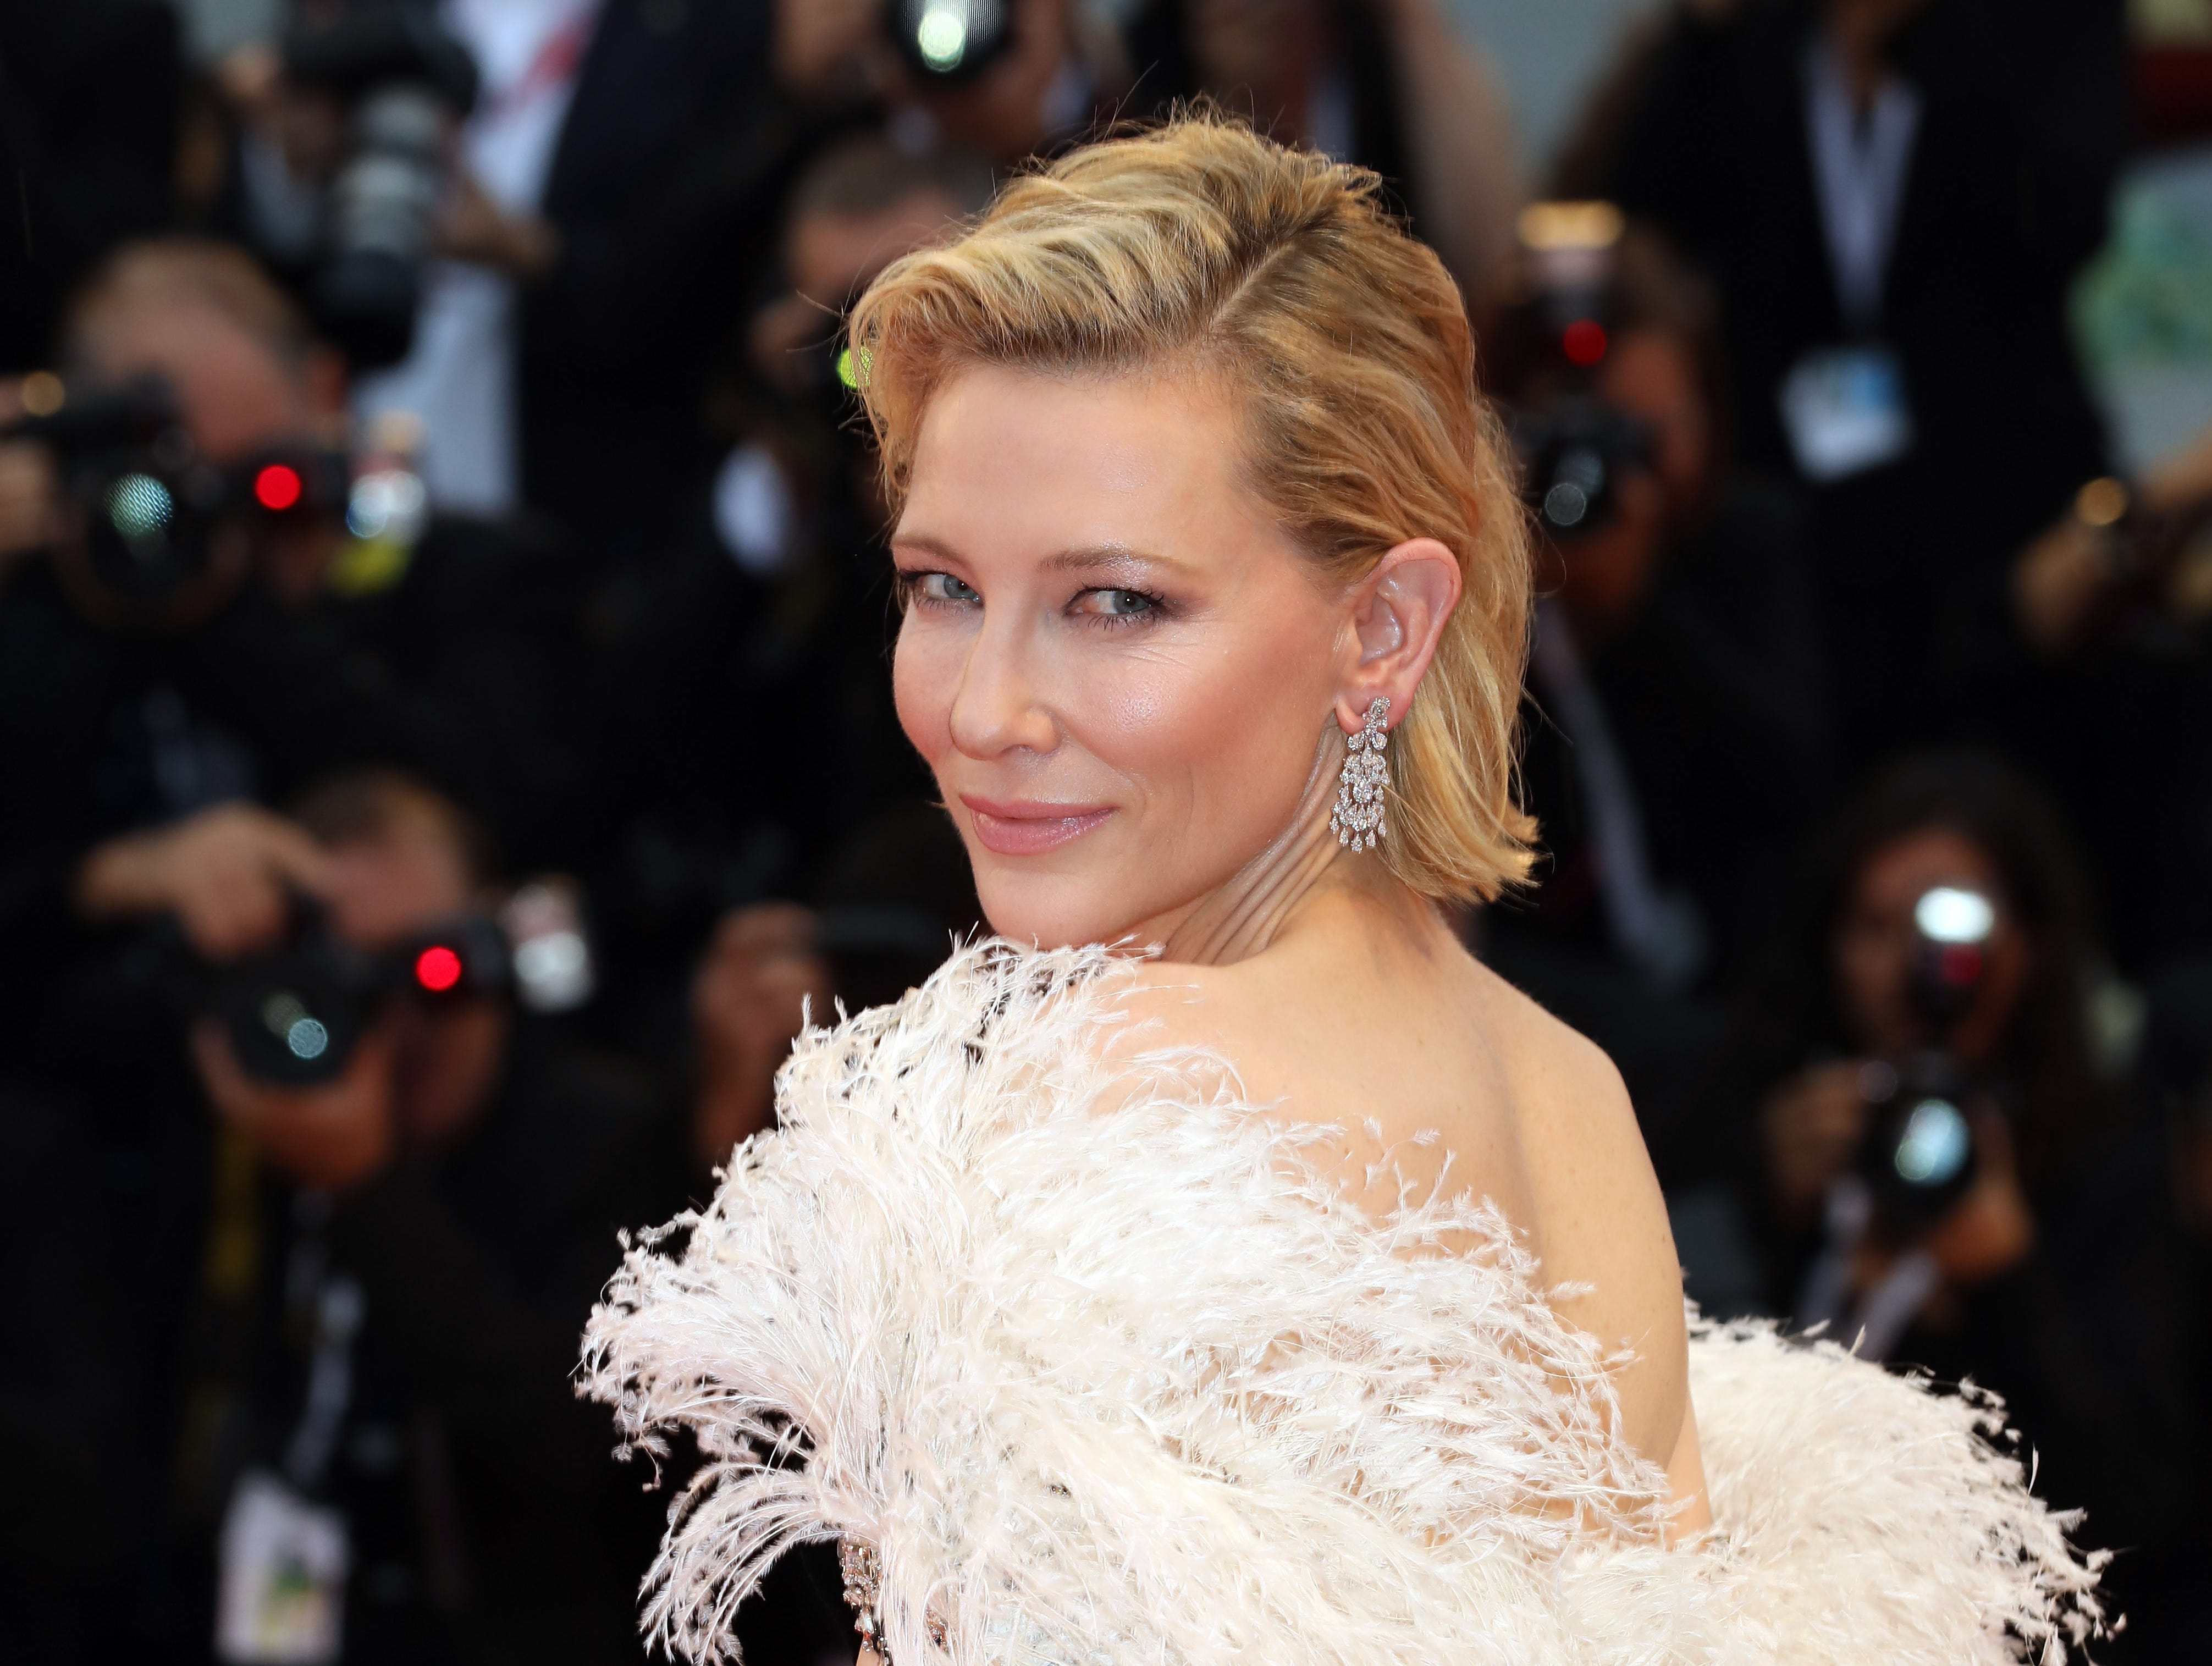 Cate Blanchett also stunned on the red carpet in a feathery ensemble.